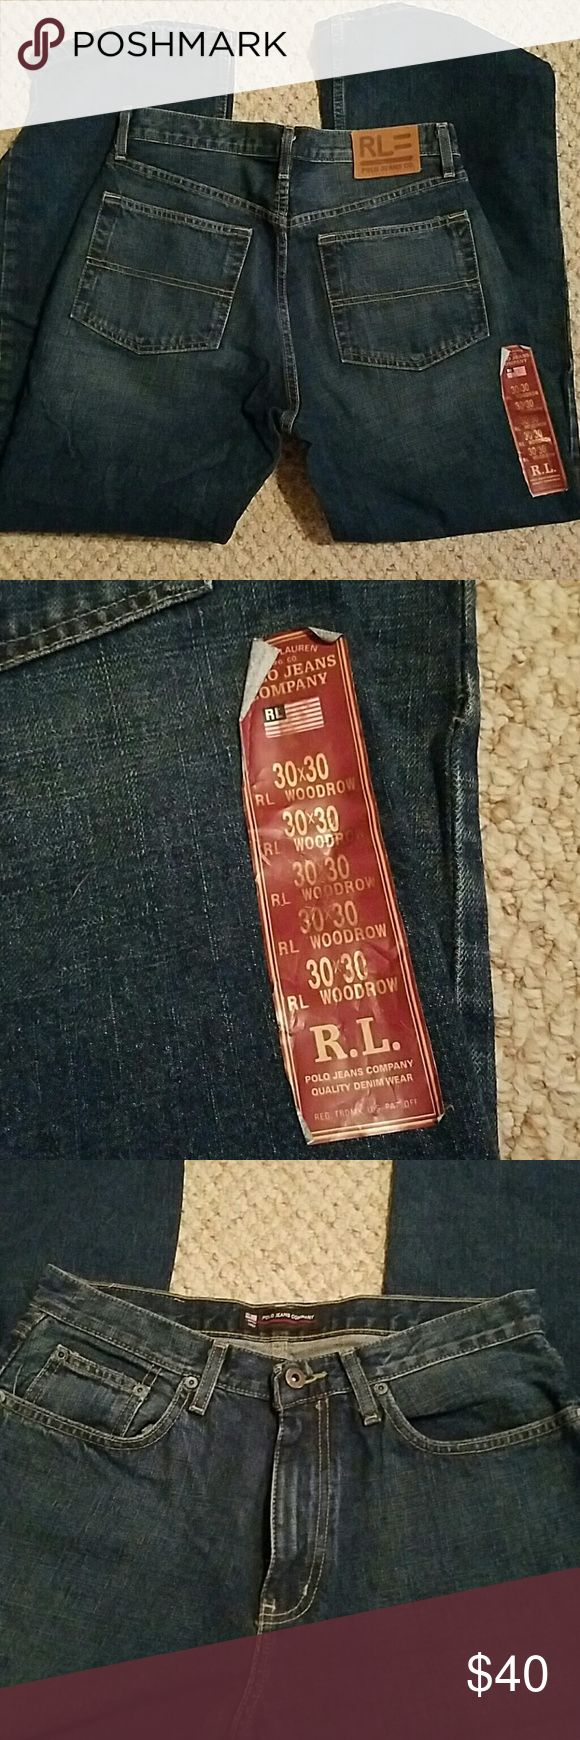 Mens Ralph Lauren Polo Jeans 30x30 New and never worn. Has original size label, price tag is missing. Ralph Lauren Jeans